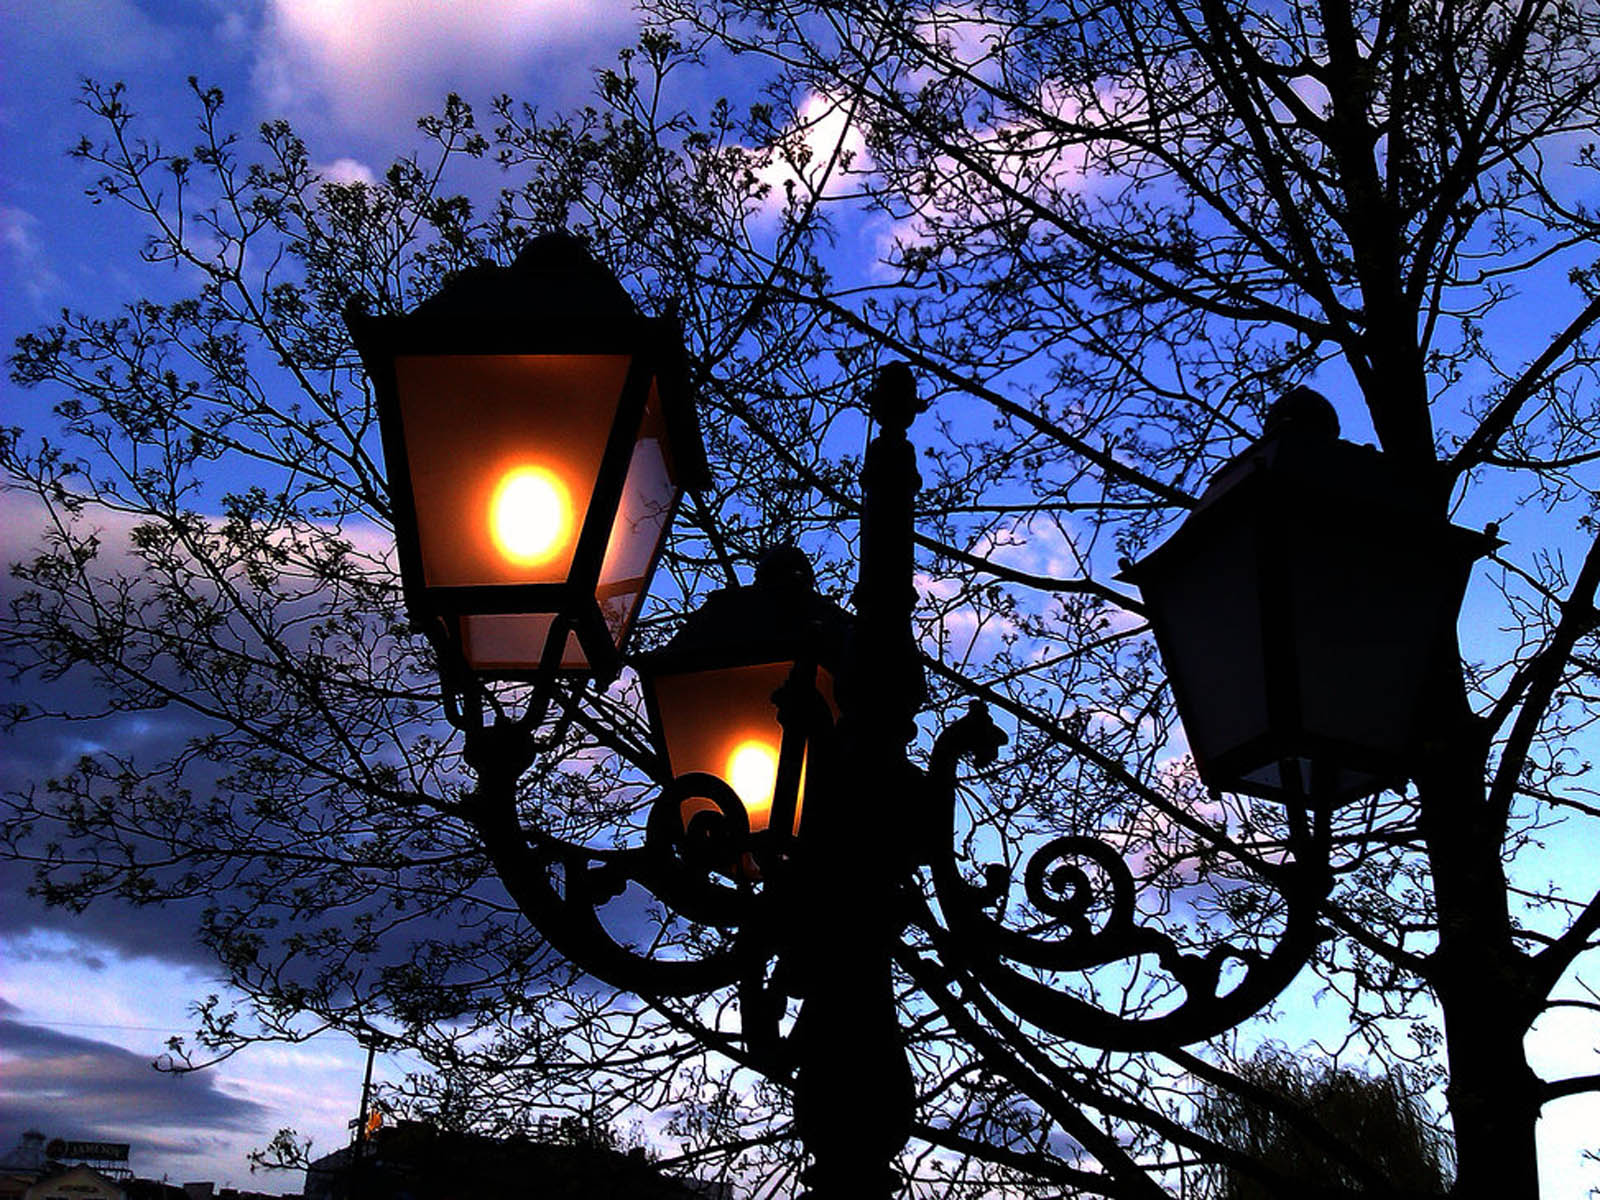 Wallpapers: Street Lamps